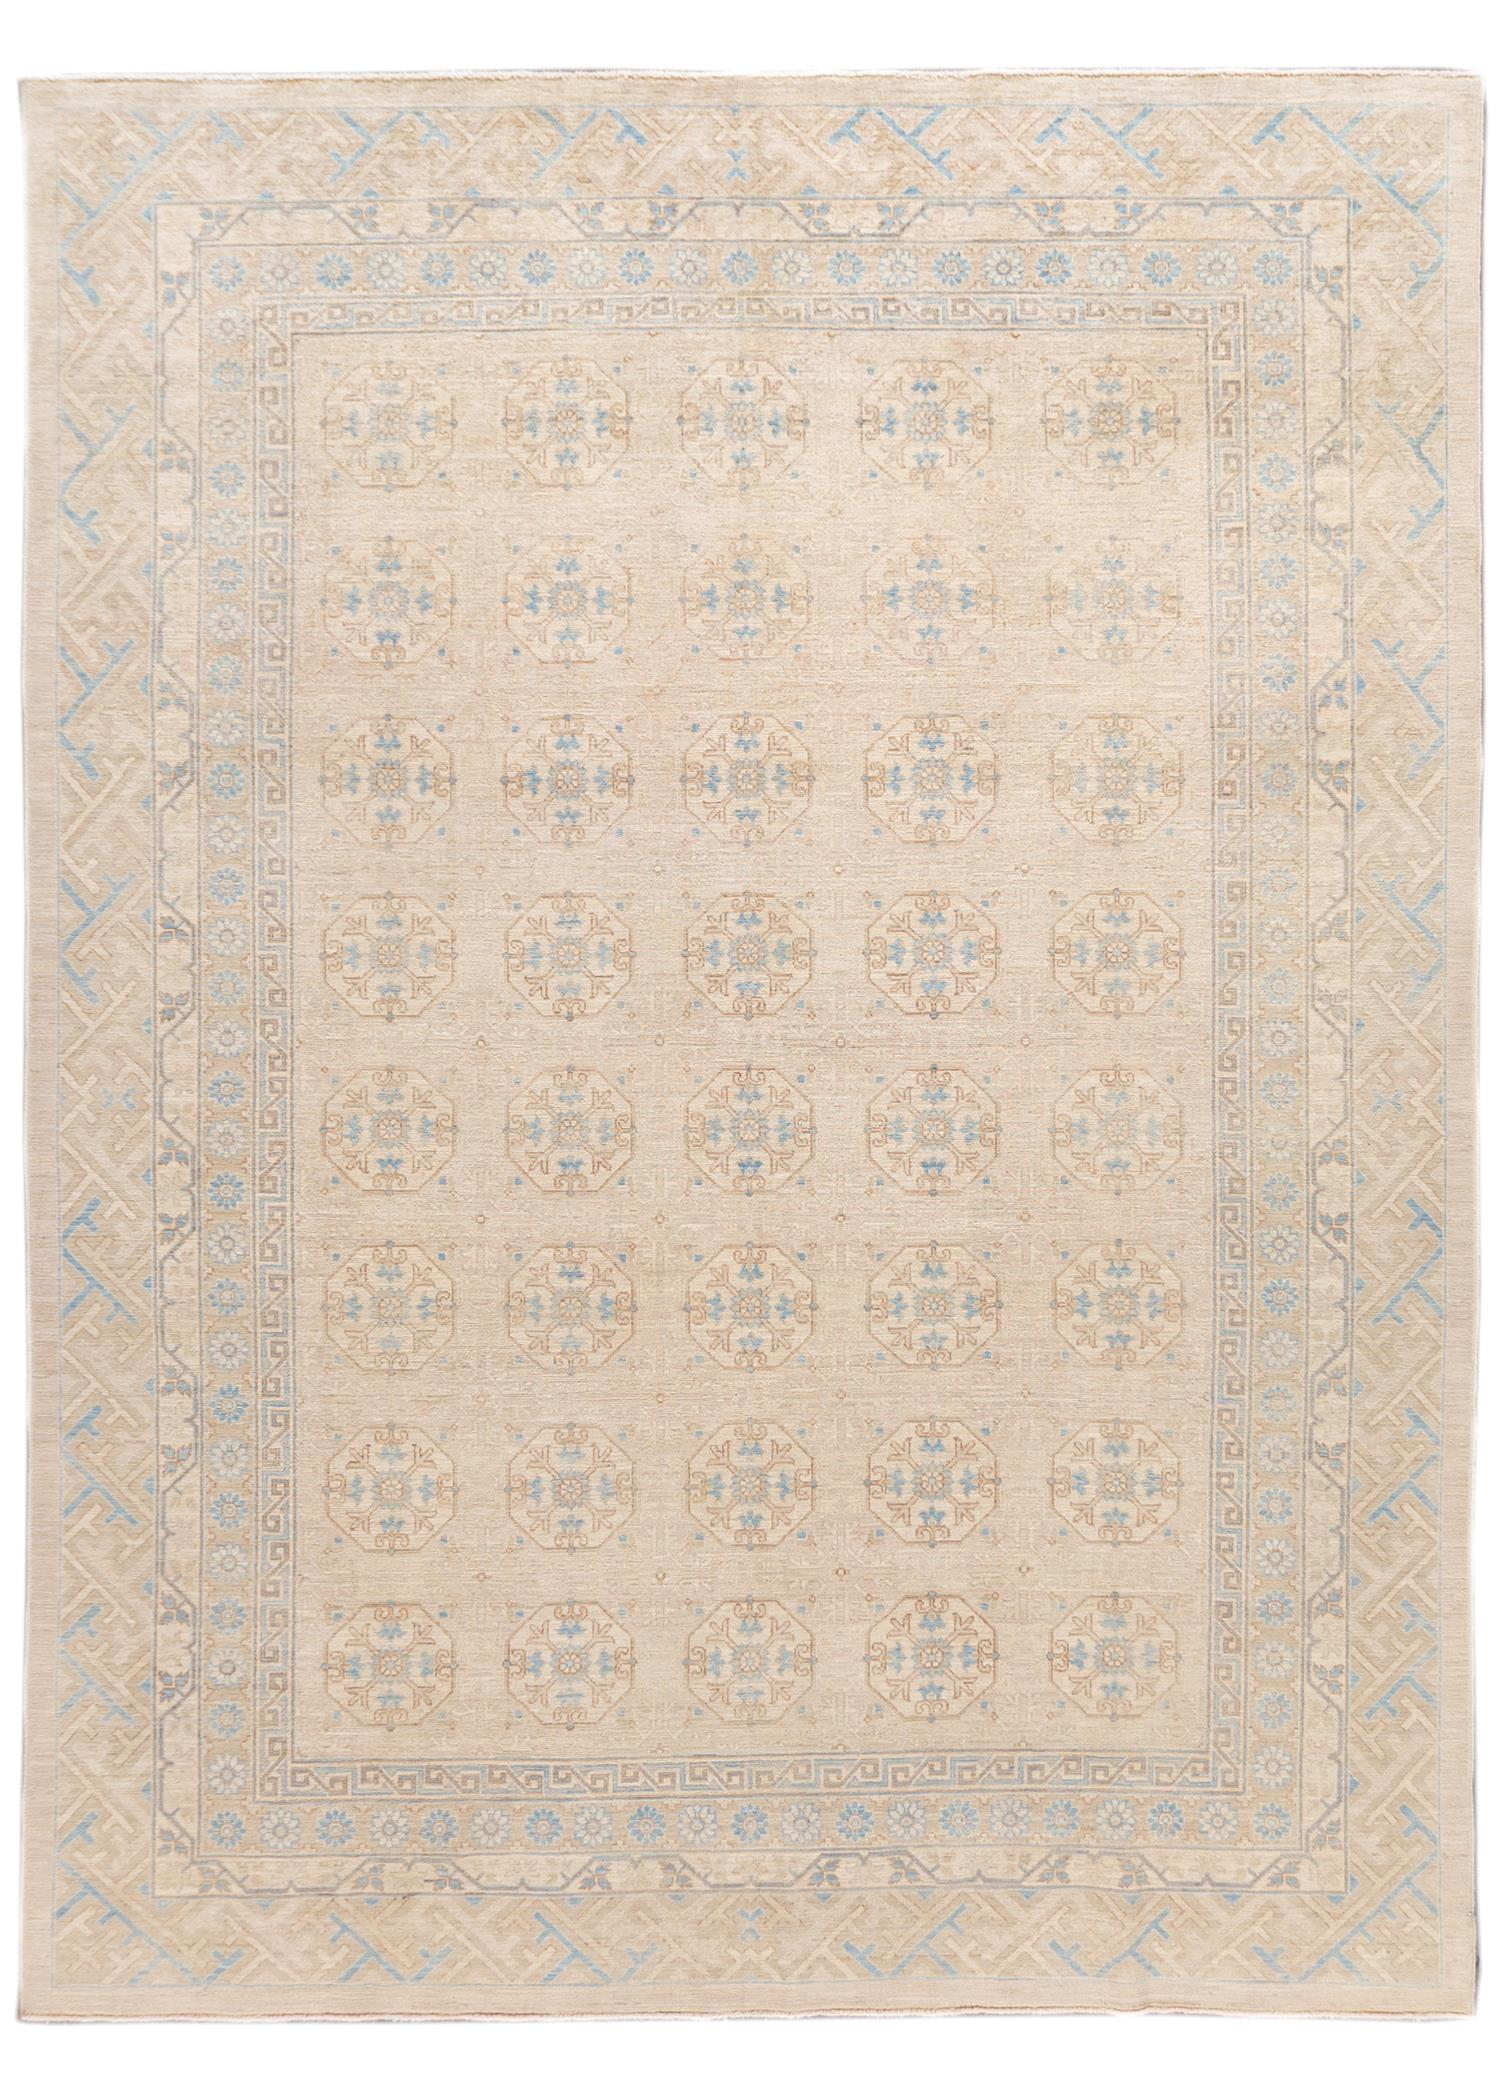 Contemporary Tan & Blue Khotan-Style Wool Area Rug 9' x 12'